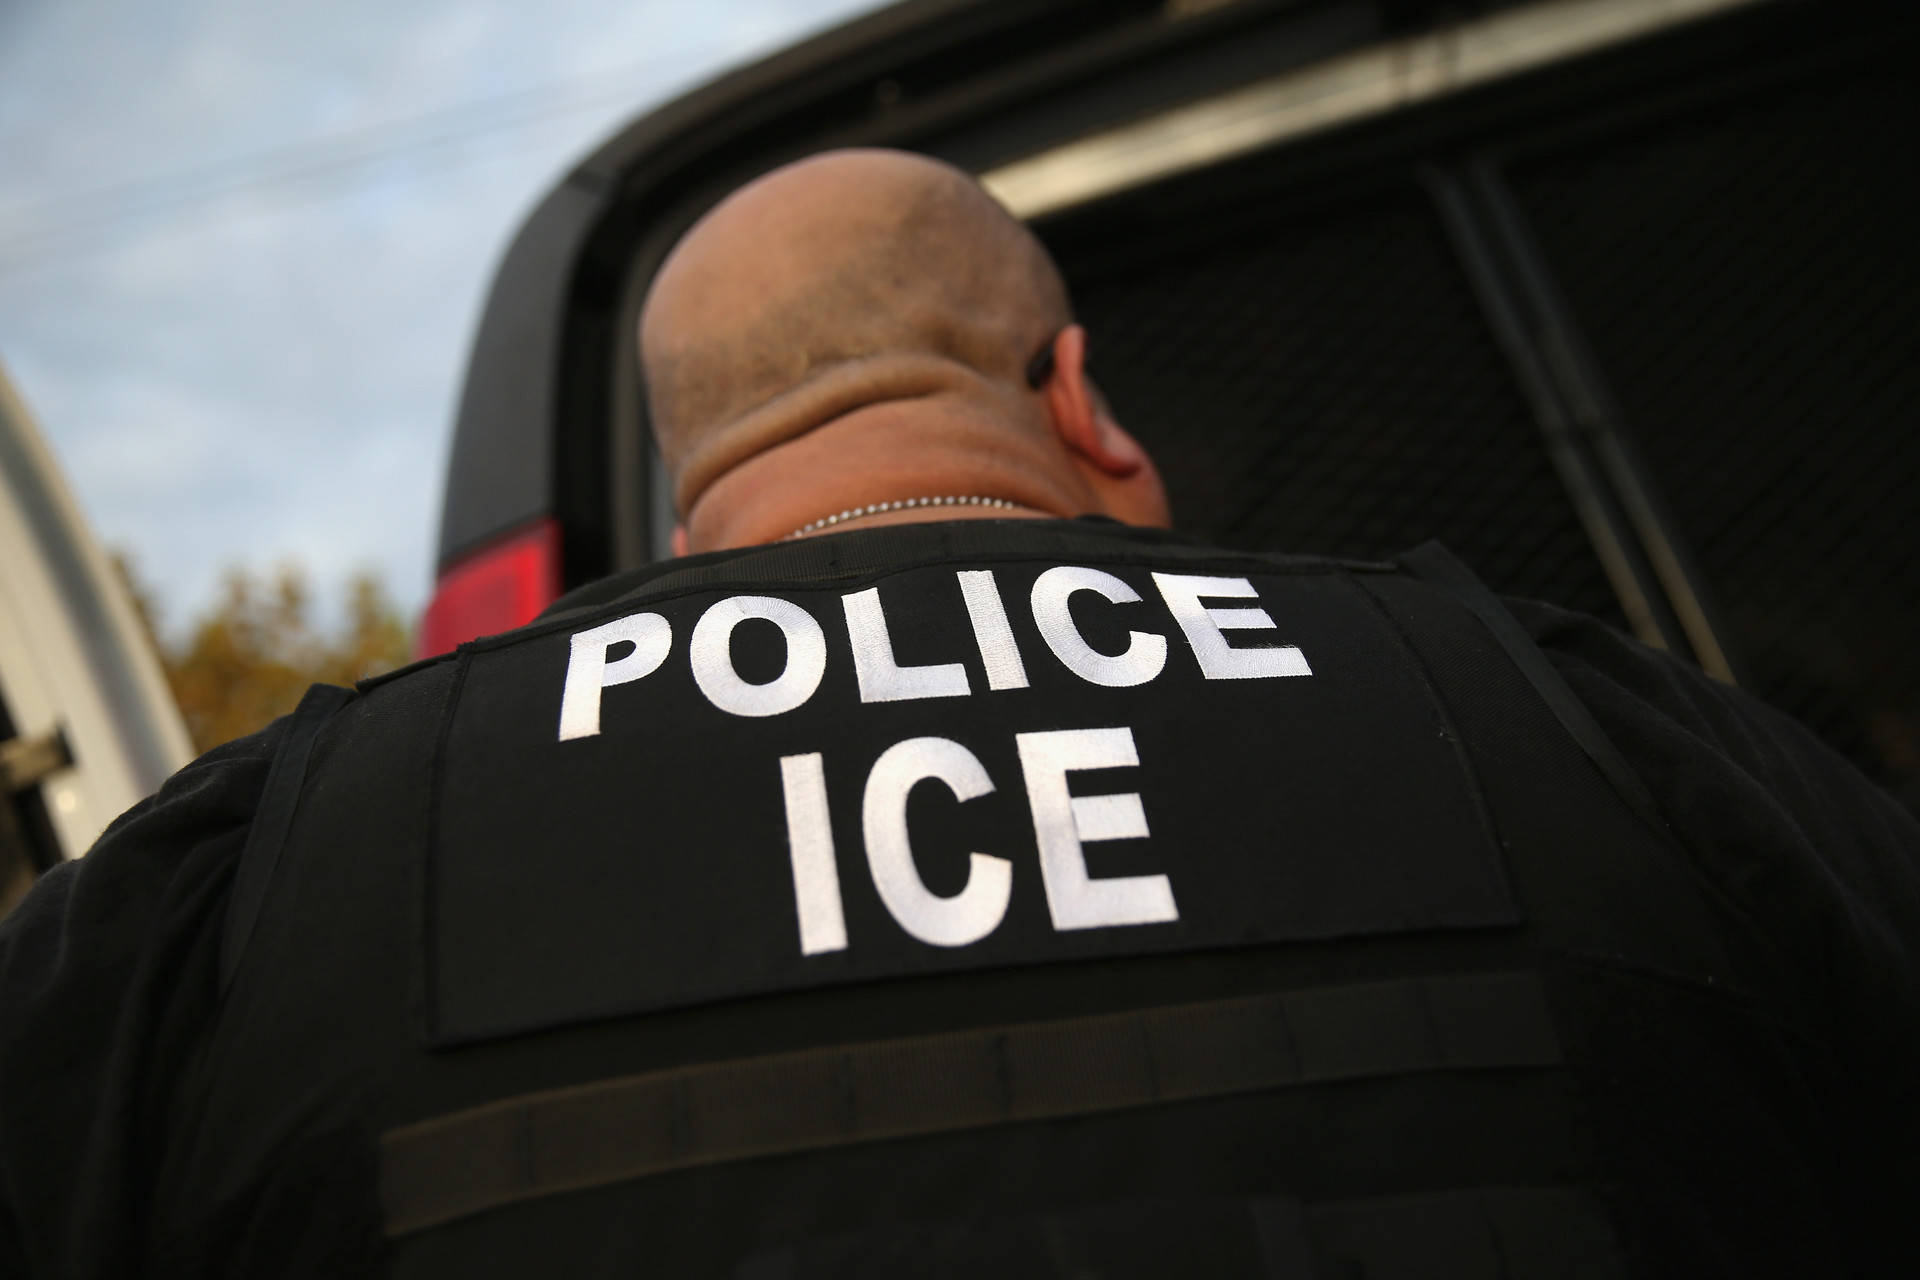 U.S. Immigration and Customs Enforcement officials say they detained the man due to an outstanding arrest warrant in a homicide case in Mexico. John Moore/Getty Images